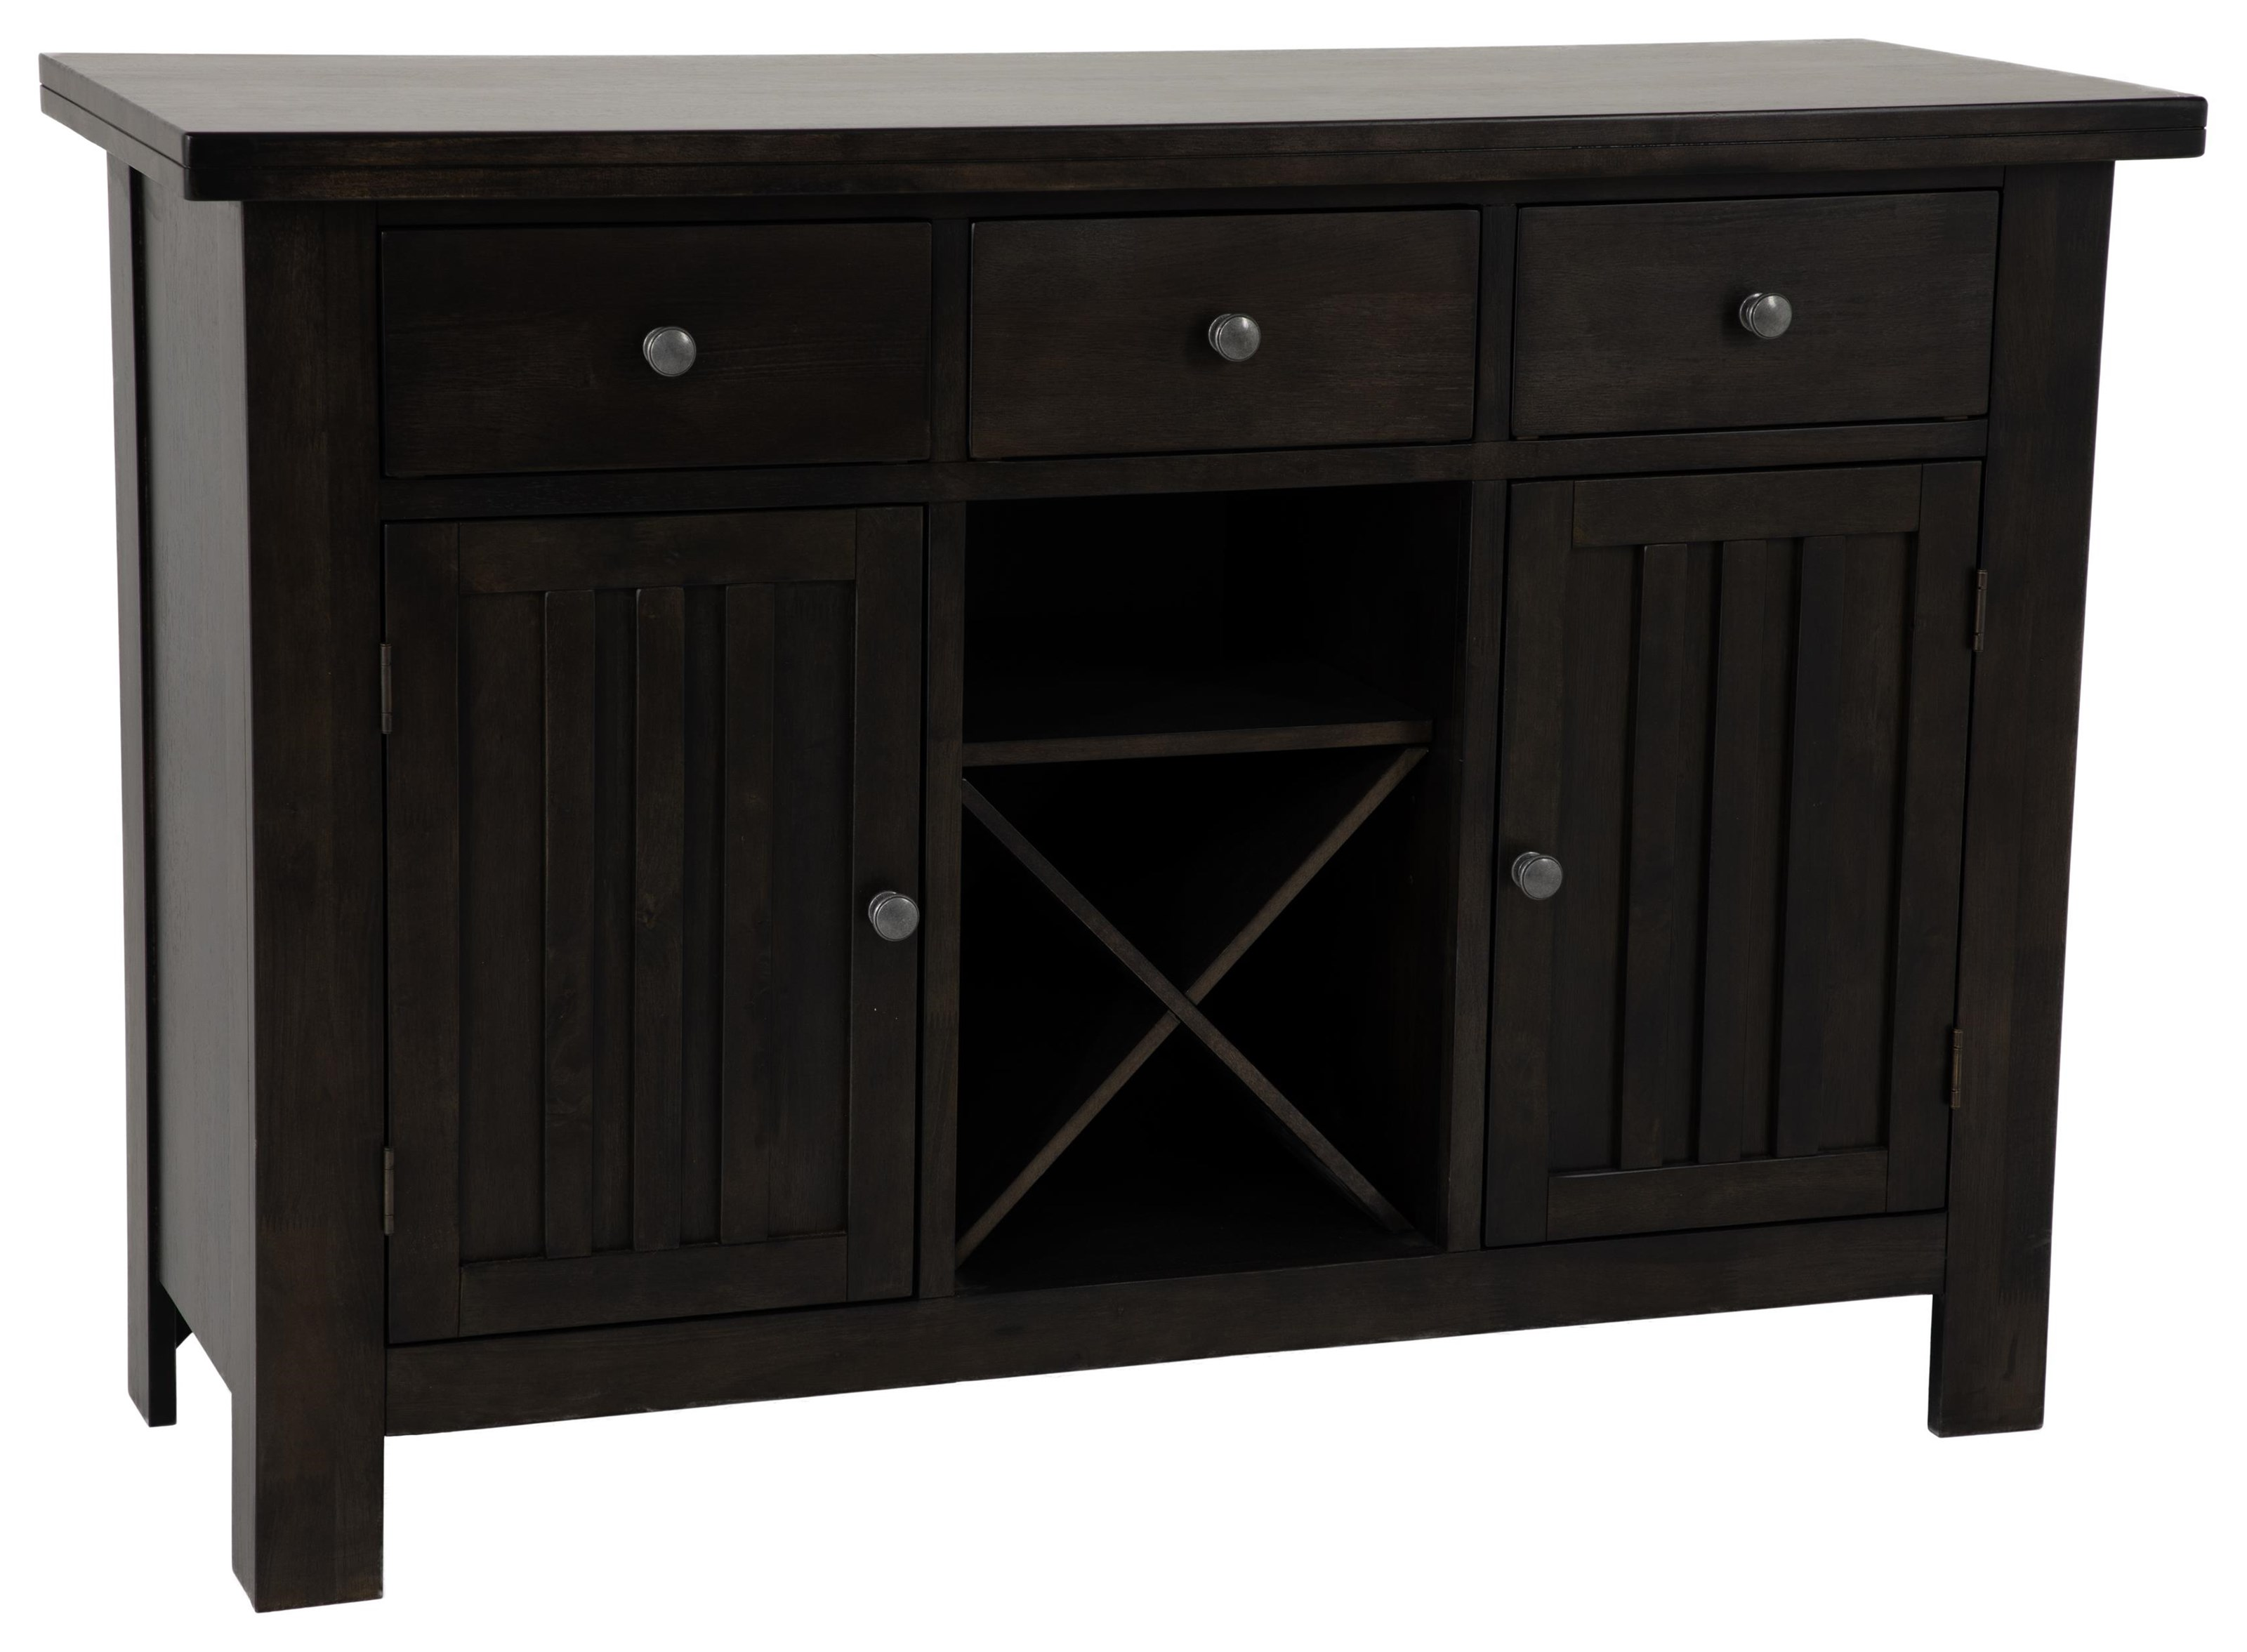 Elston Server by A-A at Walker's Furniture